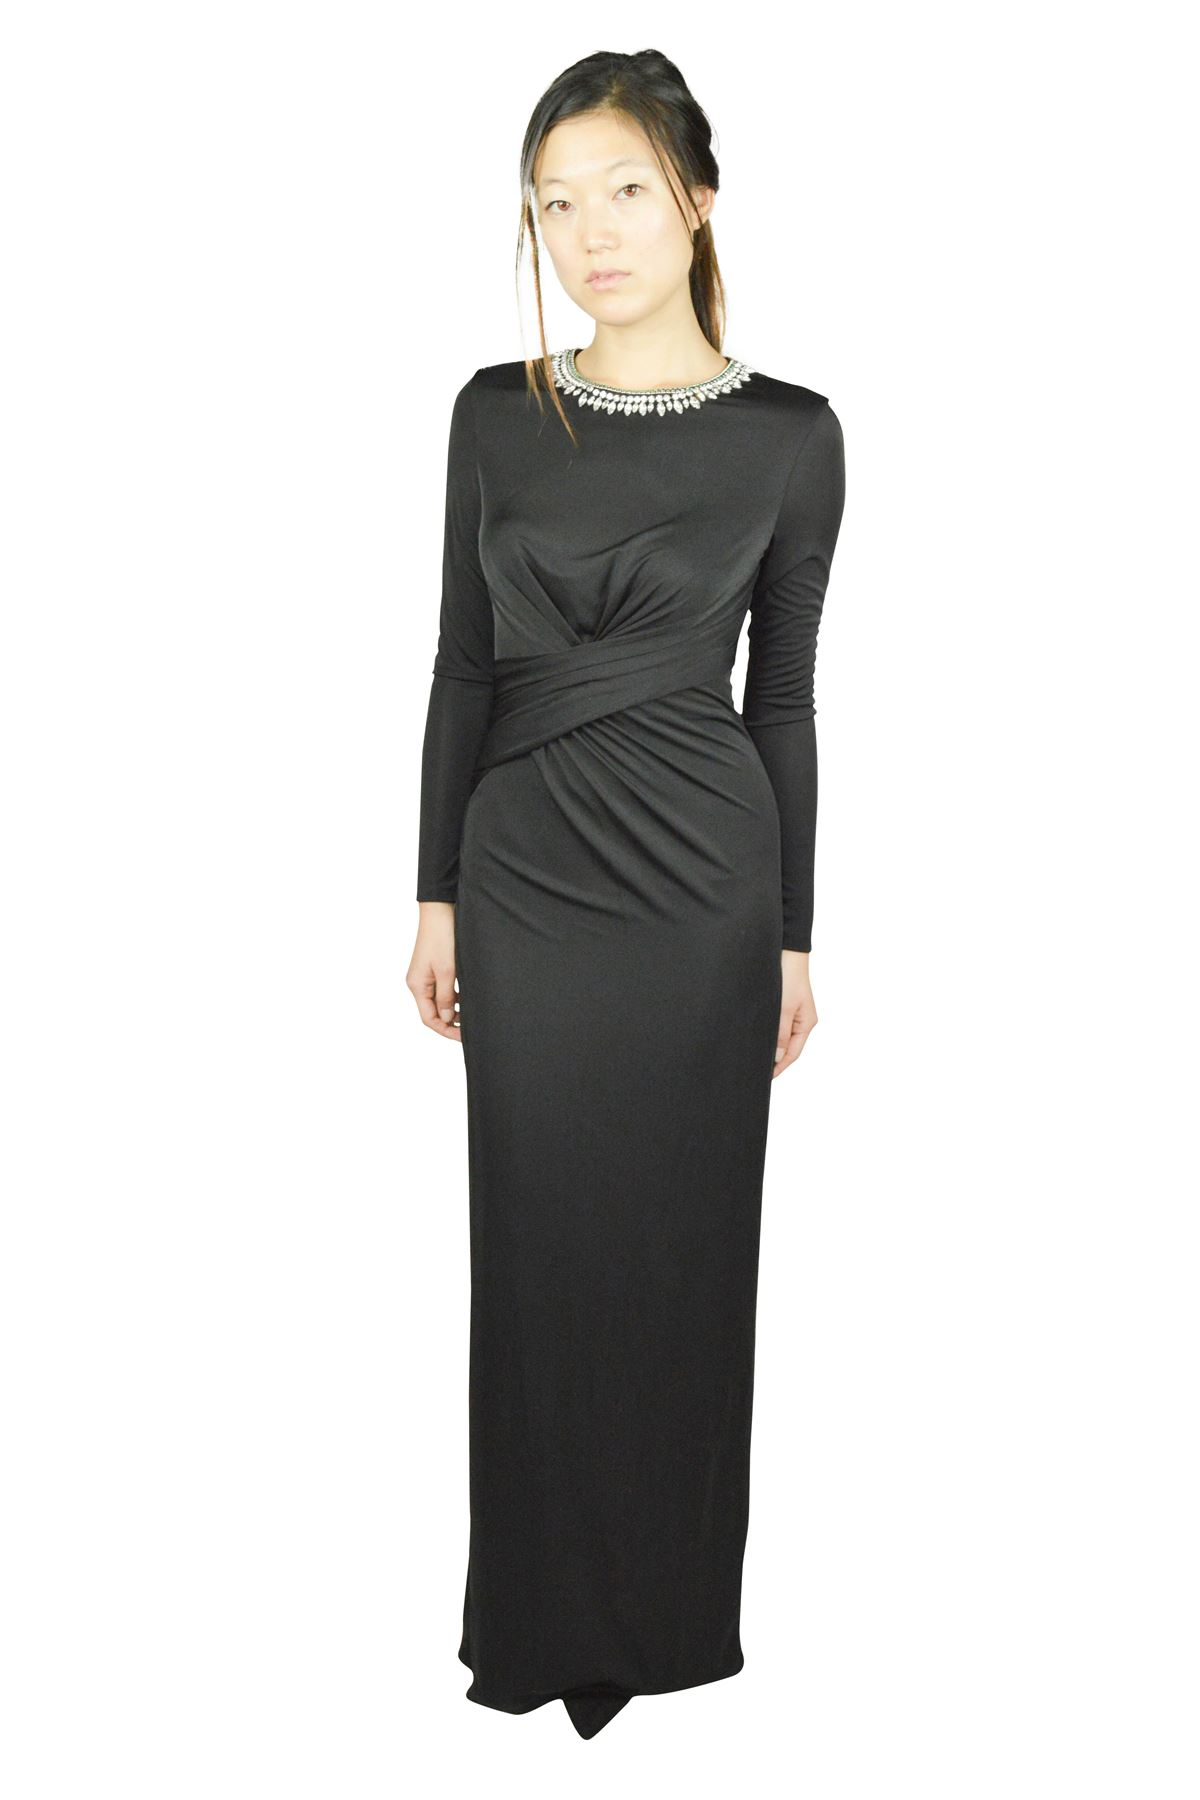 f88edaecfb492 Details about TED BAKER LONDON WOMEN S EMMELISHED MAXI DRESS LONG SLEEVES  NIGHT FORMAL BLACK 0